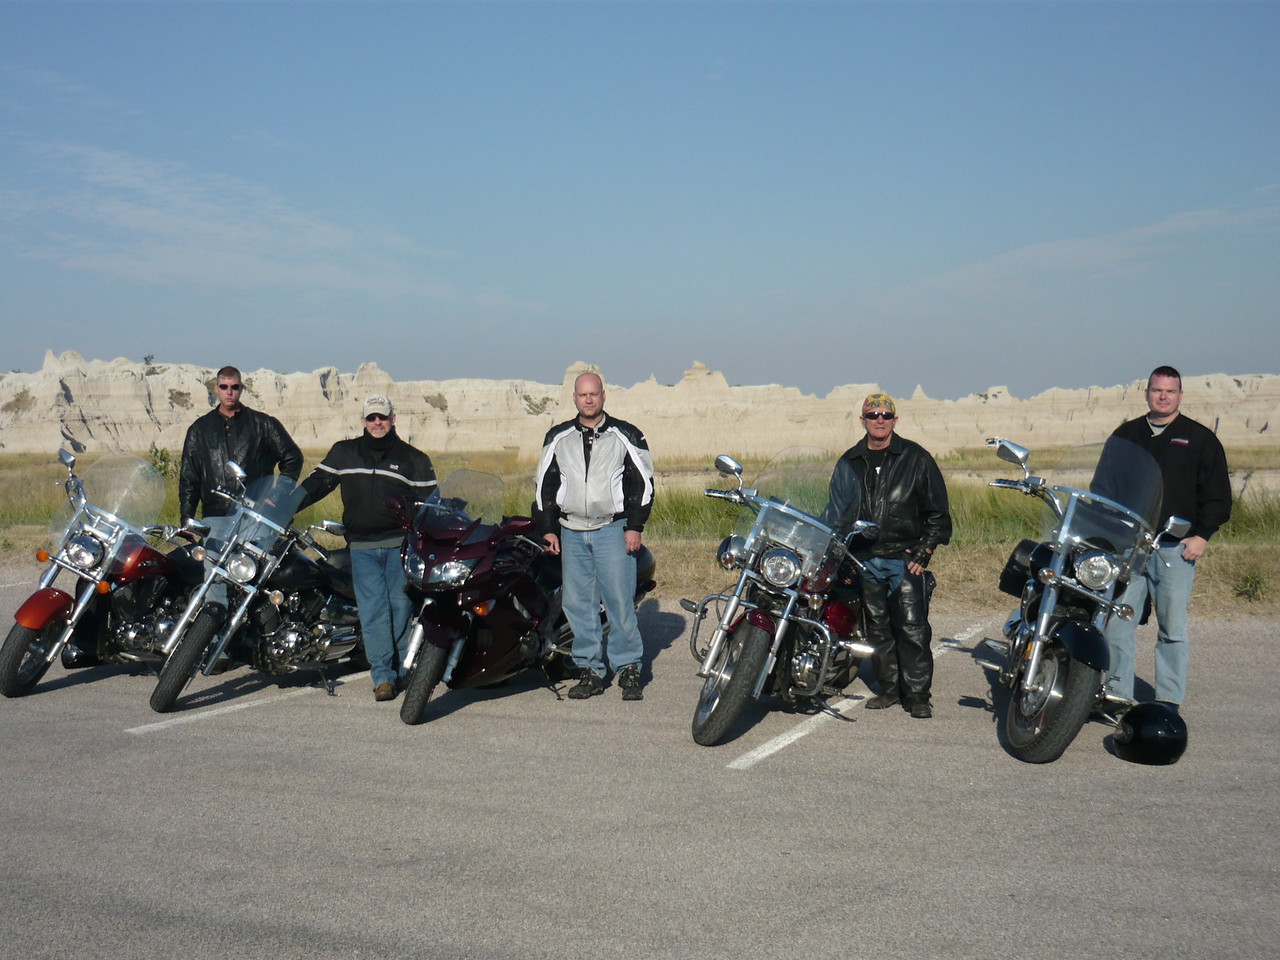 Left to right, Coleman, me, Dean, Ron and Sean.<br /> <br /> Left to right, VTX, VStar, FJR, VTX, and VTX.